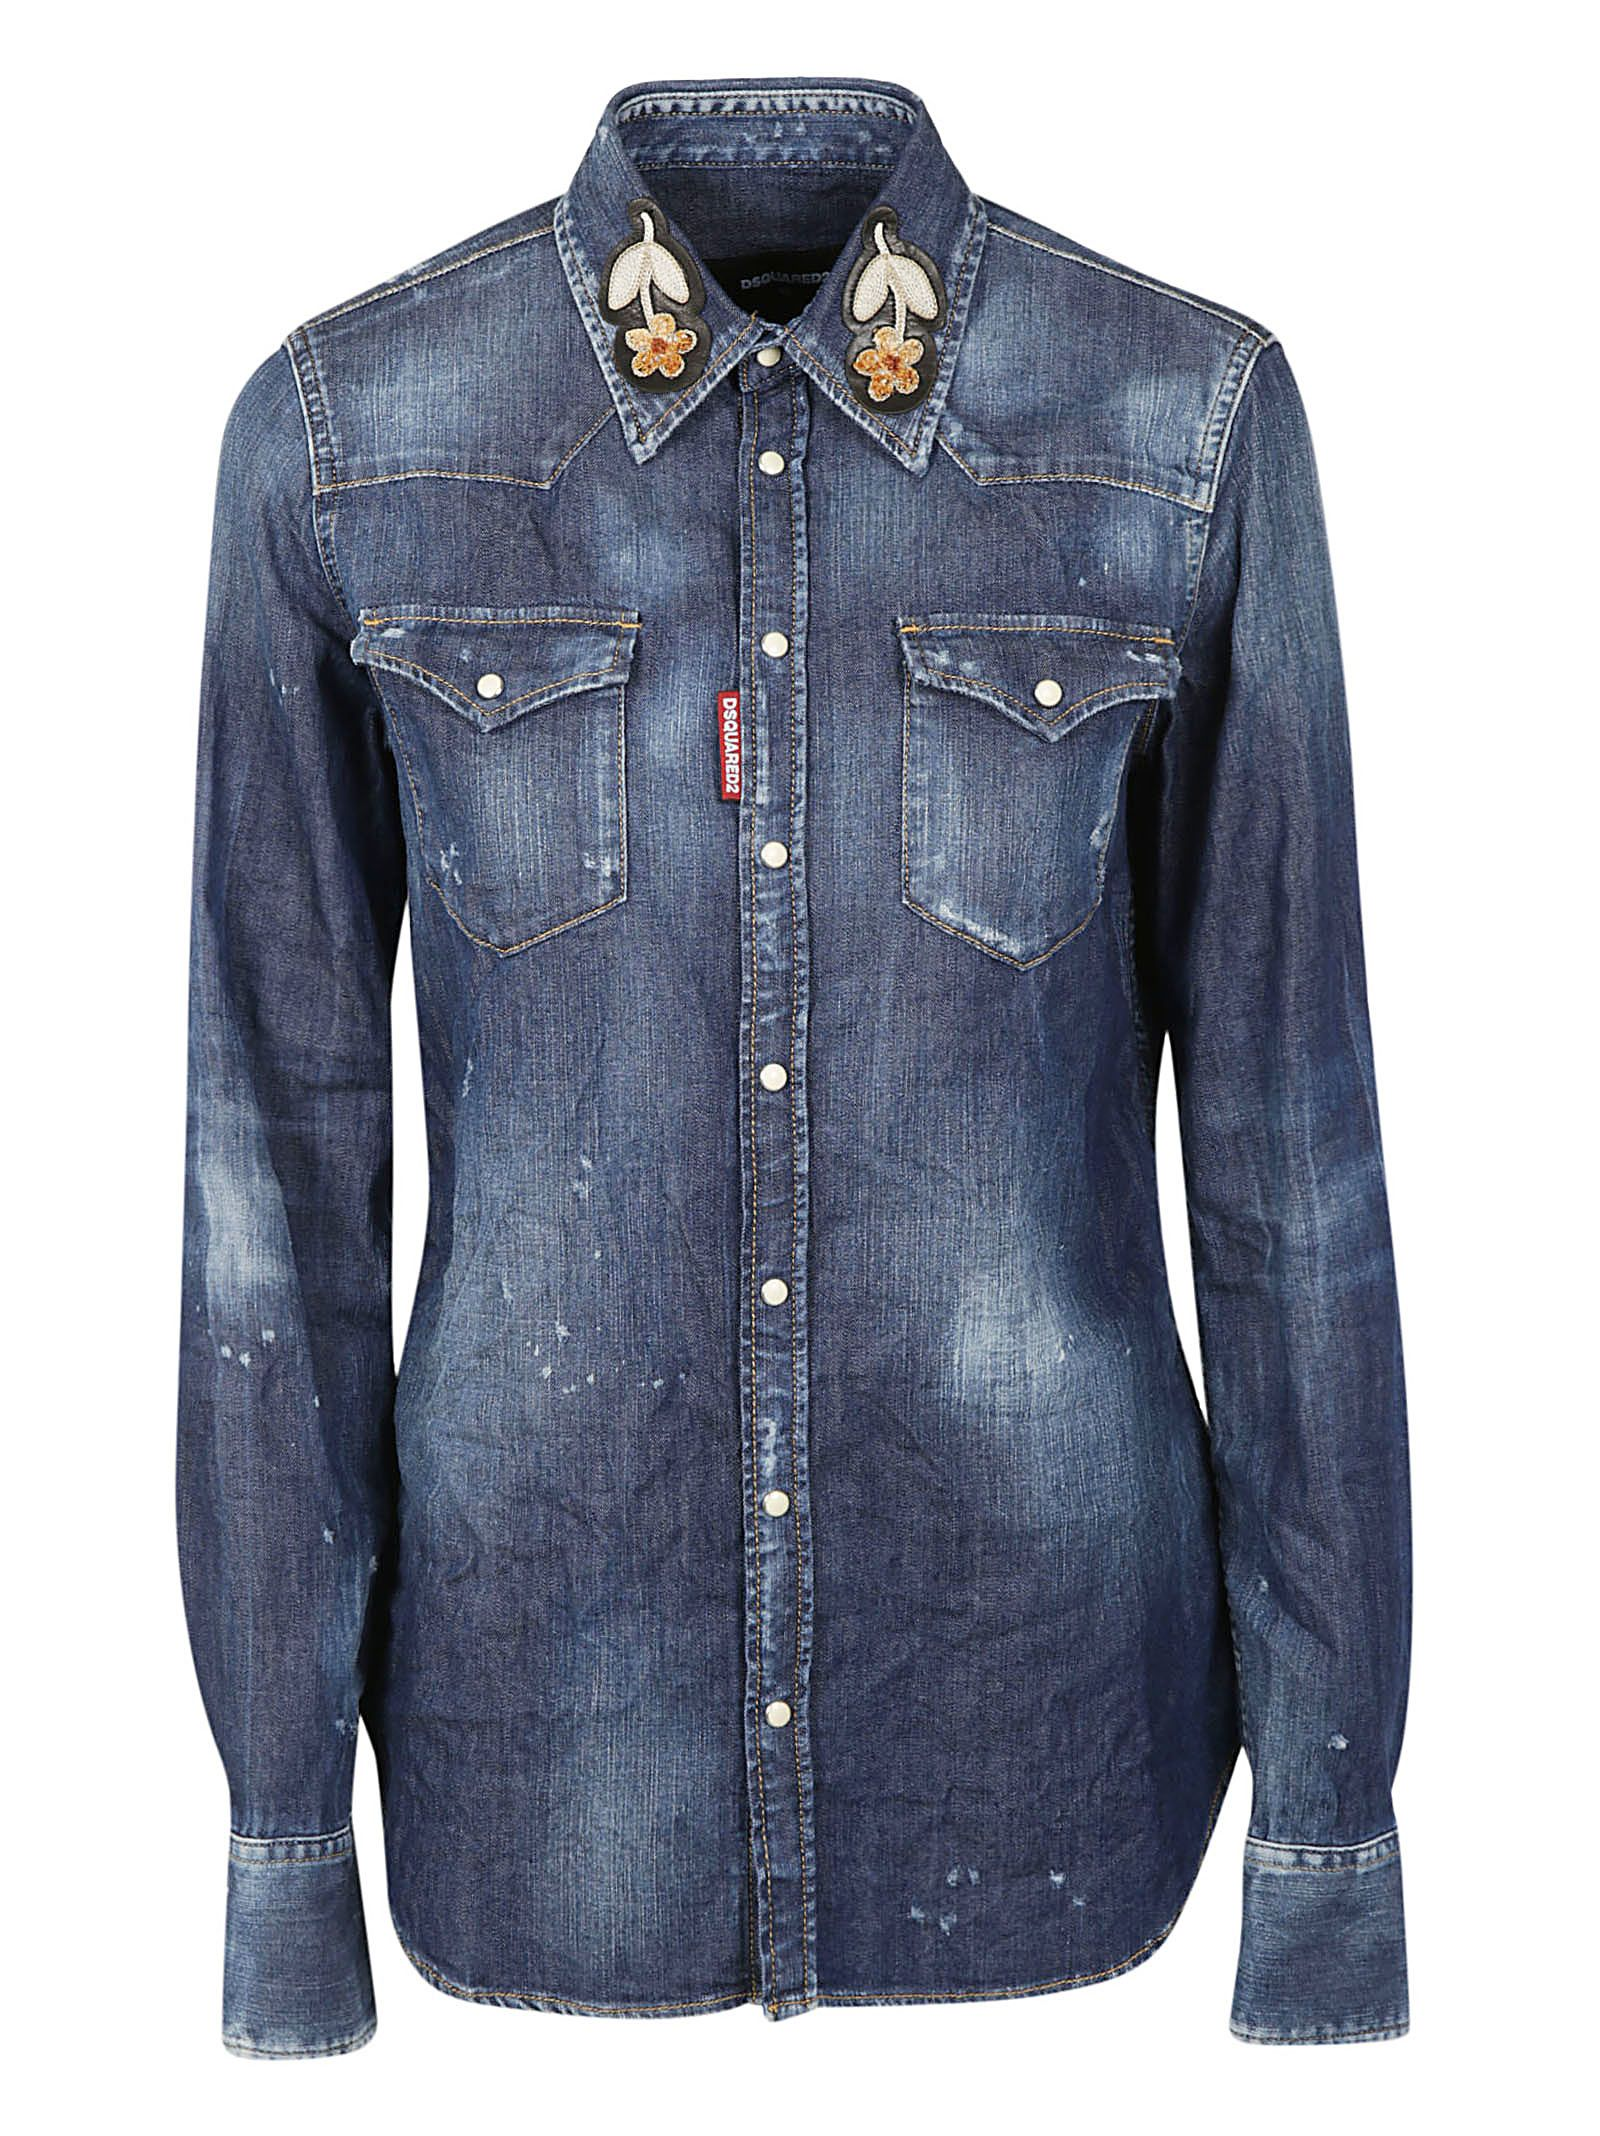 Collar Patched Denim Jacket in Blue